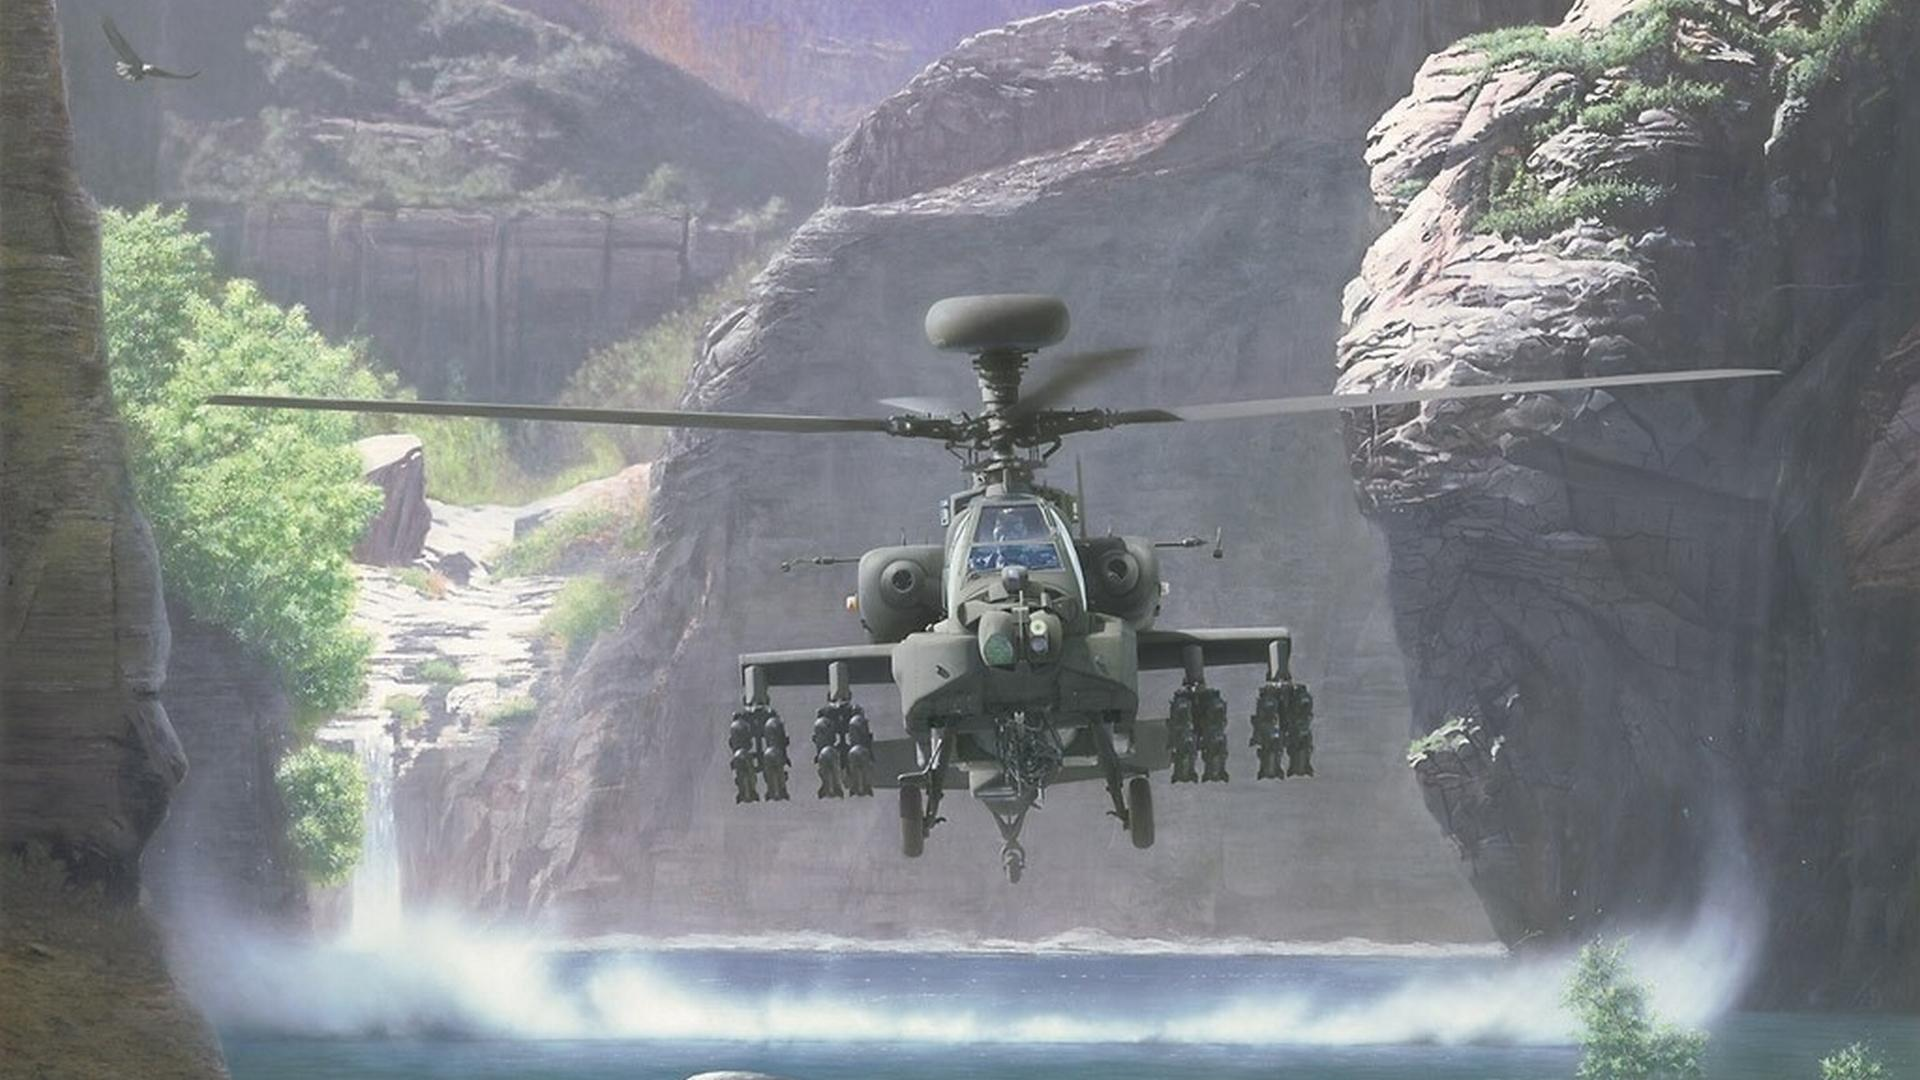 Boeing Ah-64 Apache wallpapers HD quality